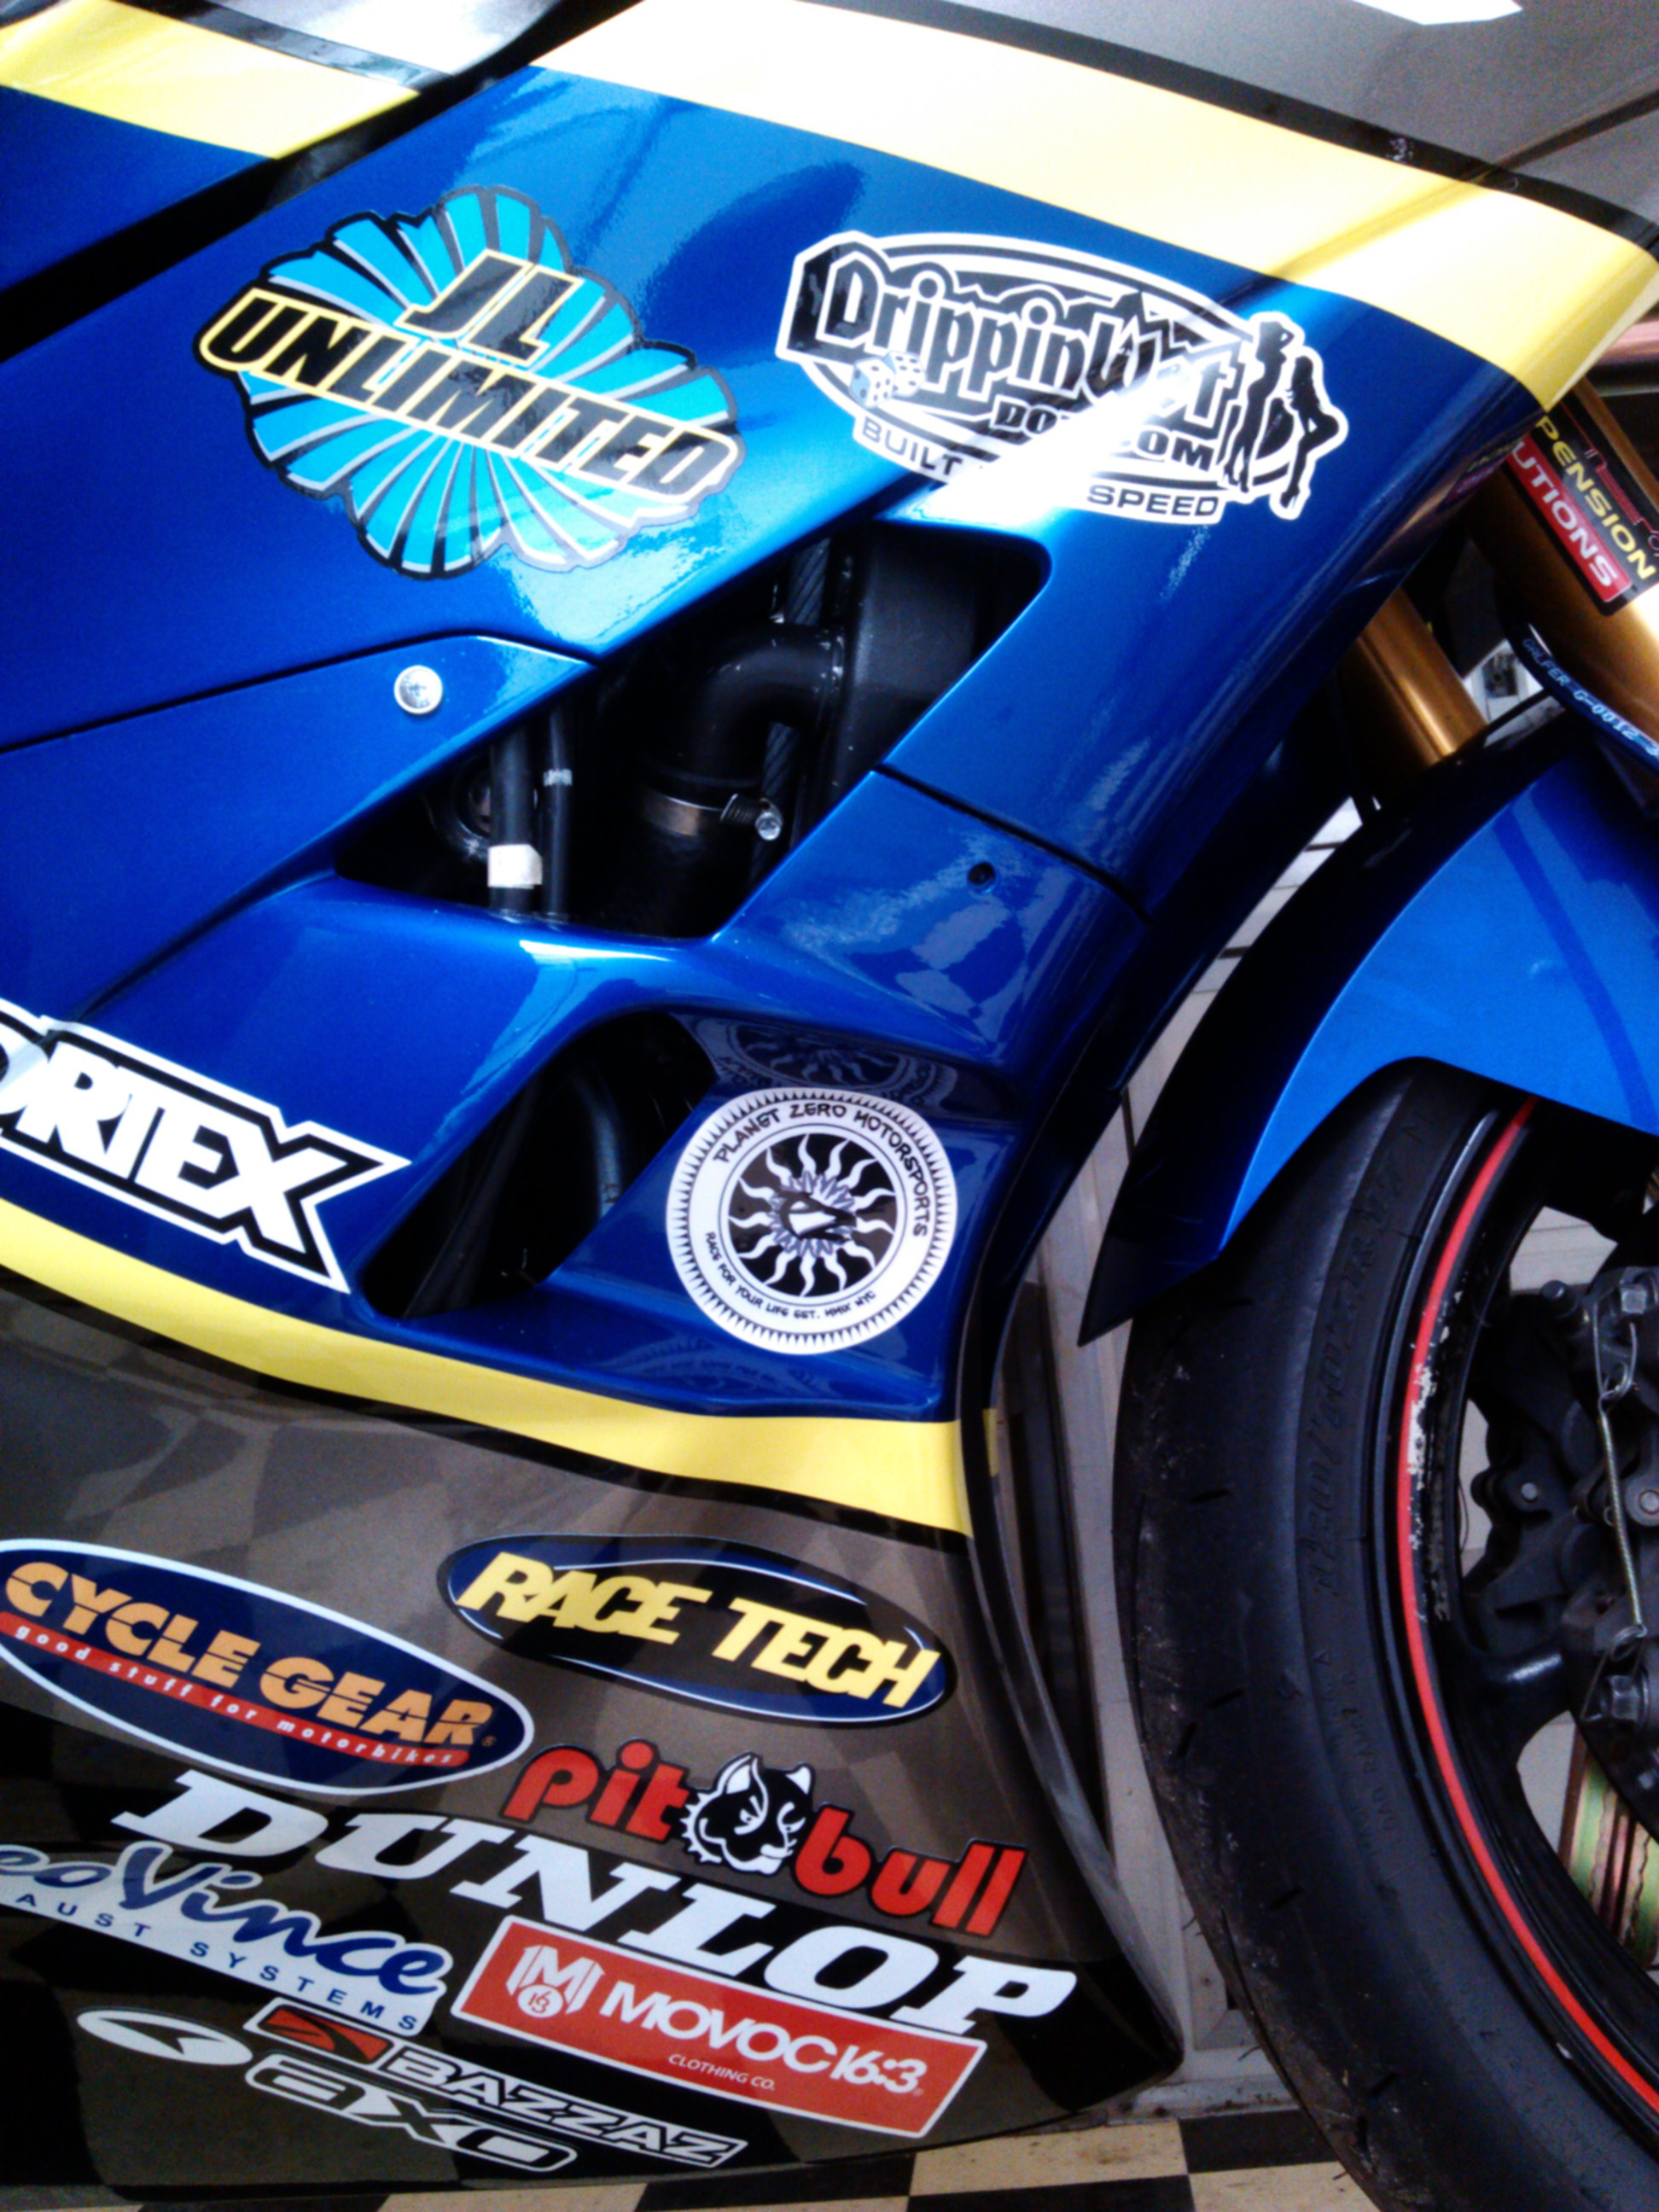 Planet Zero Motorsports is pleased to annouce our first sponsored rider Jordan Long of JL Unlimited. AMA Circuit Motorcycle Racer